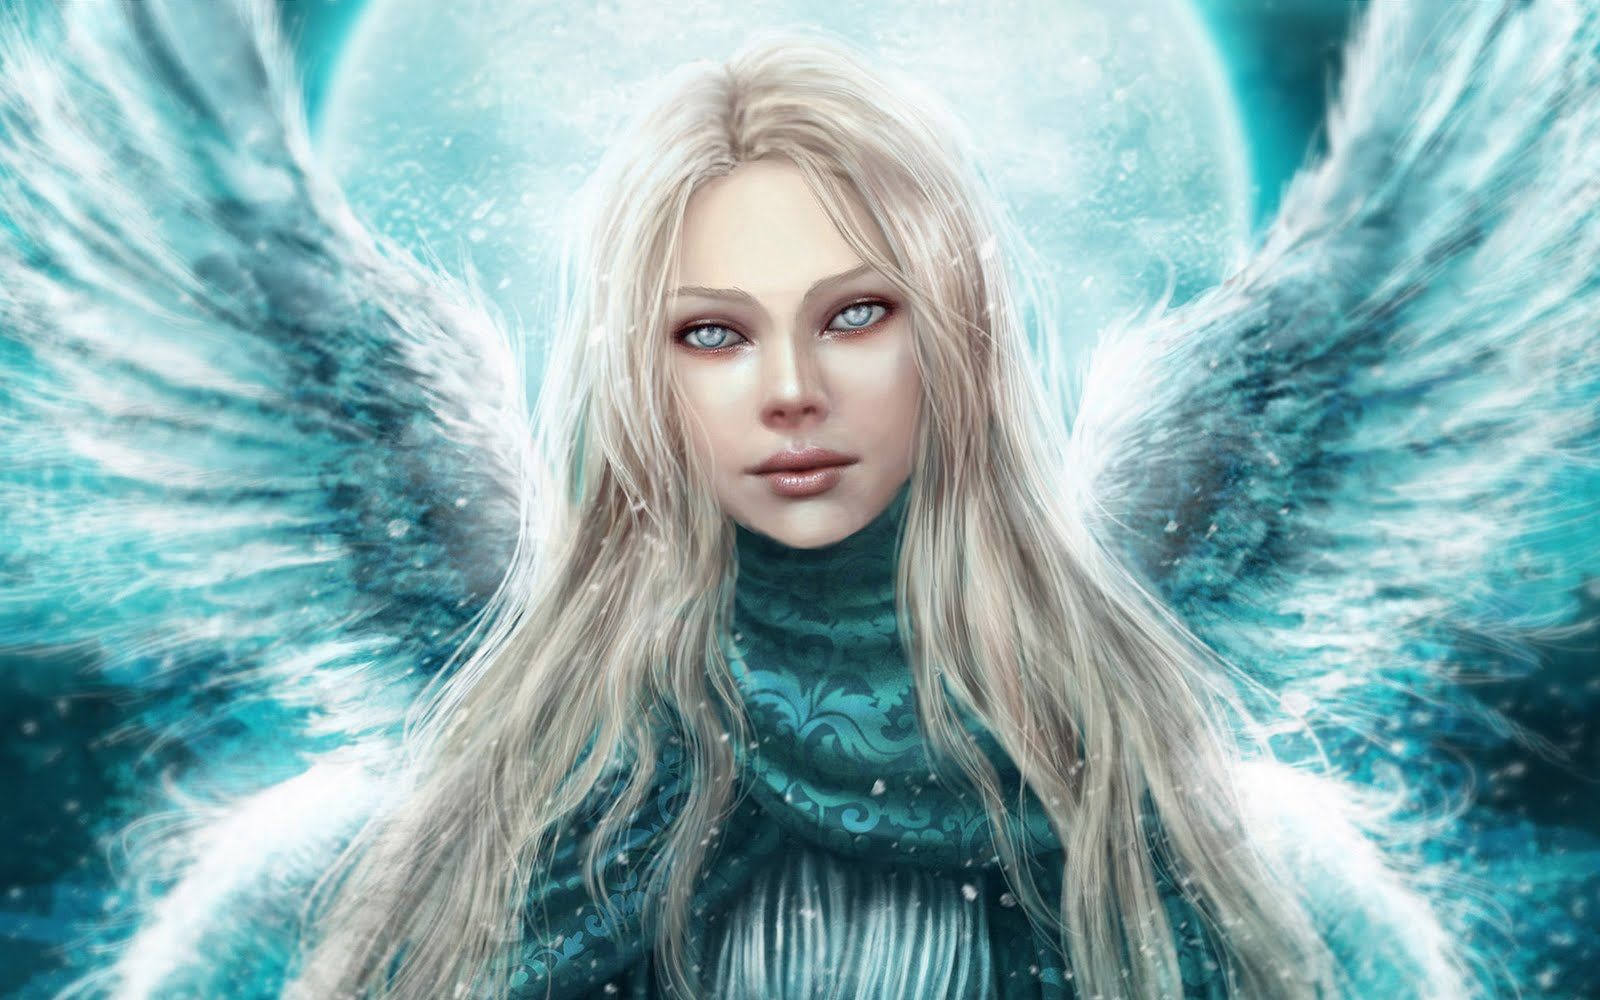 digital fantasy girls hd photos free download pixhome